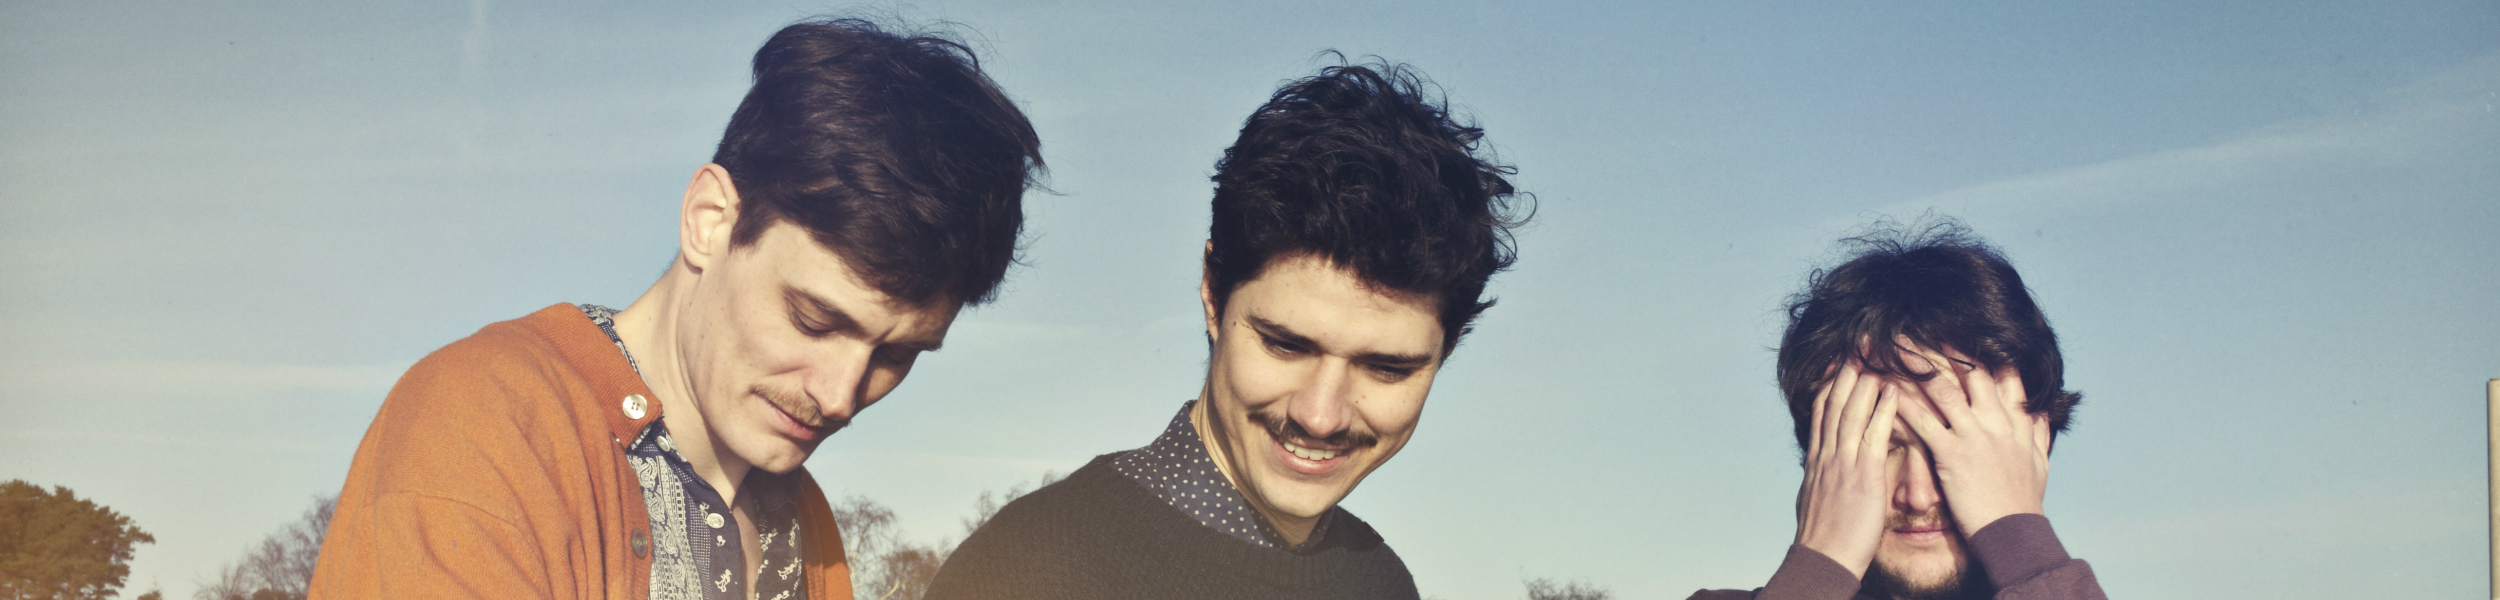 Efterklang - Efterklang Release An Island As 'Pay What You Like' Download & DVD Package